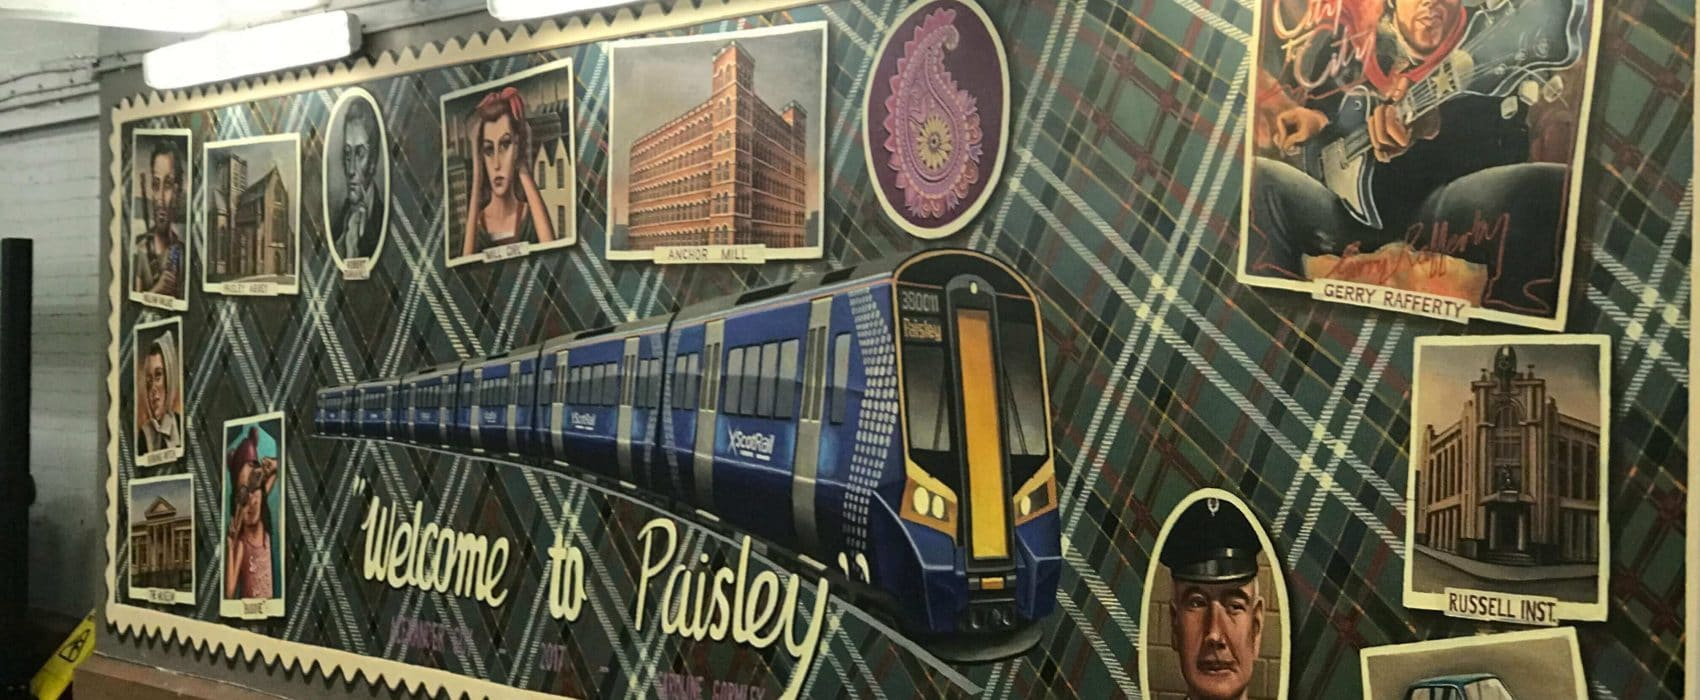 welcome-to-paisley-train-station